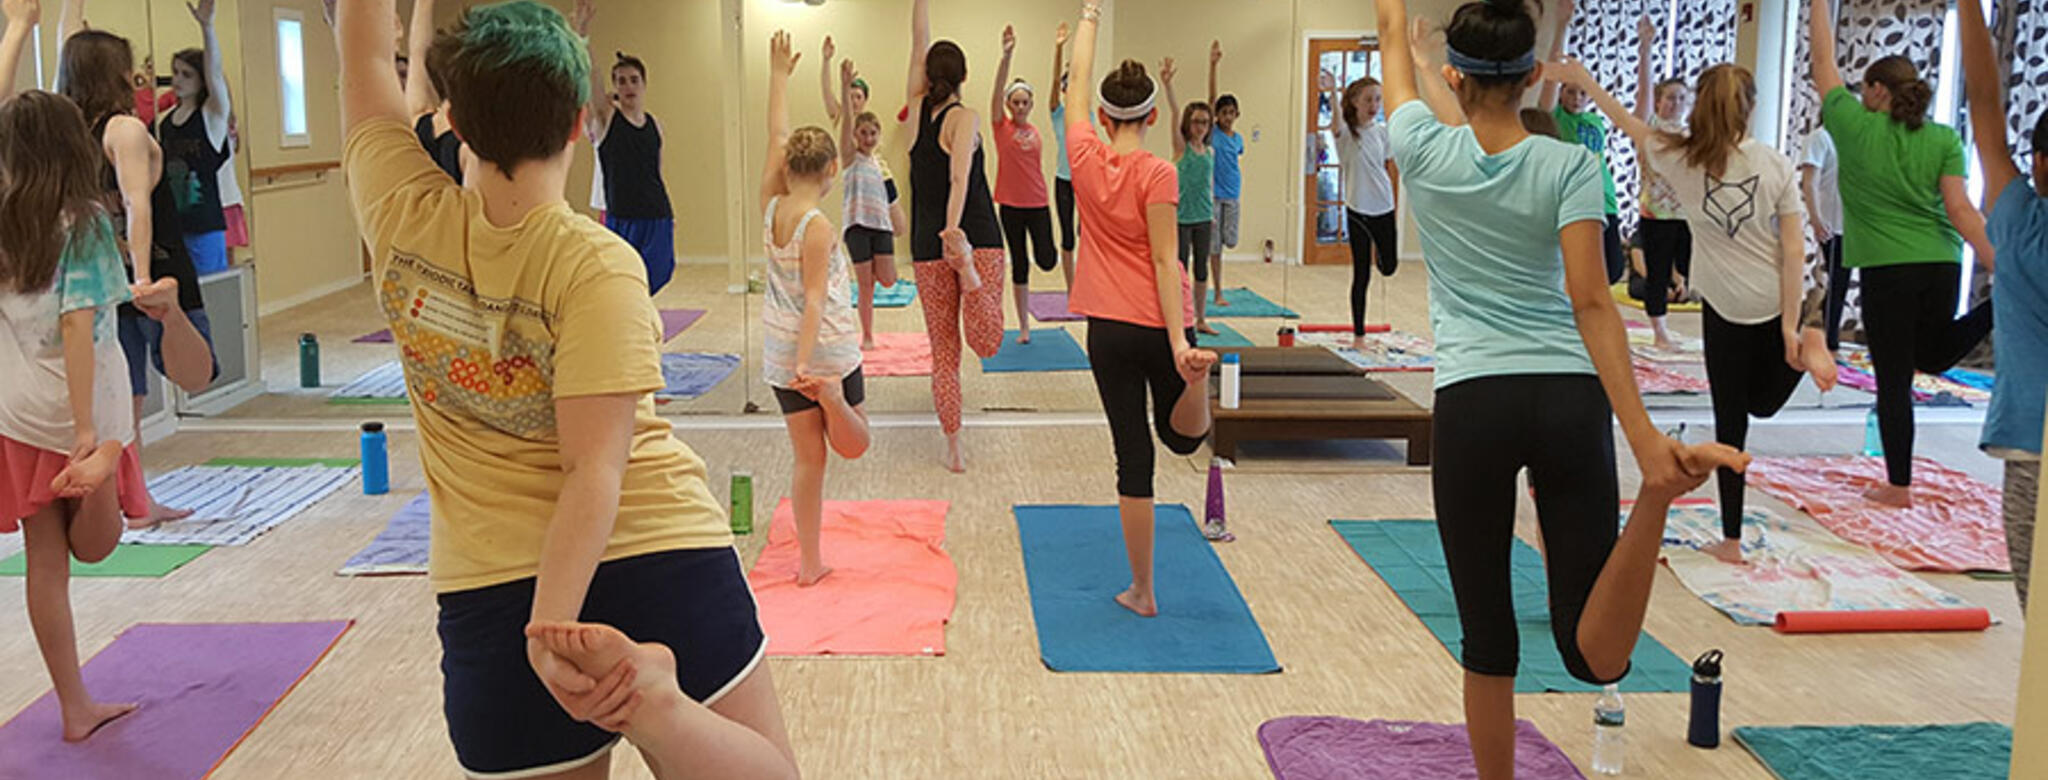 Hot Yoga Factory in Chelmsford, Massachusetts